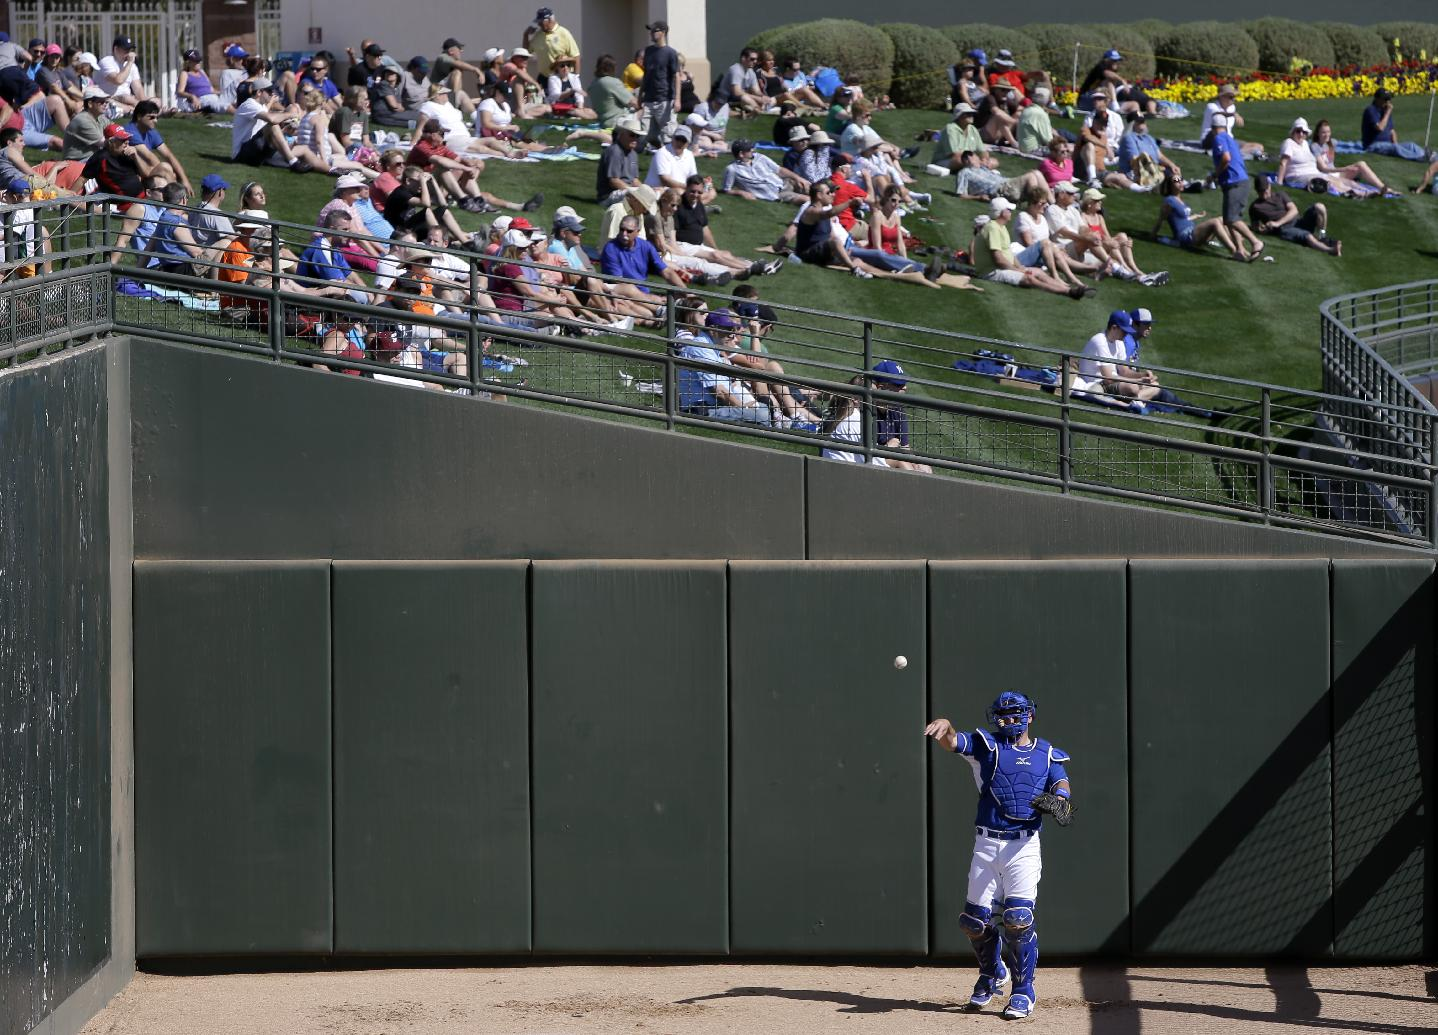 Some of the more than 9,000 fans in attendance watch from the center-field lawn as a Kansas City Royals catcher warms up in the bullpen in the fourth inning of an exhibition baseball game between the Royals and the Texas Rangers, Thursday, Feb. 27, 2014, in Surprise, Ariz